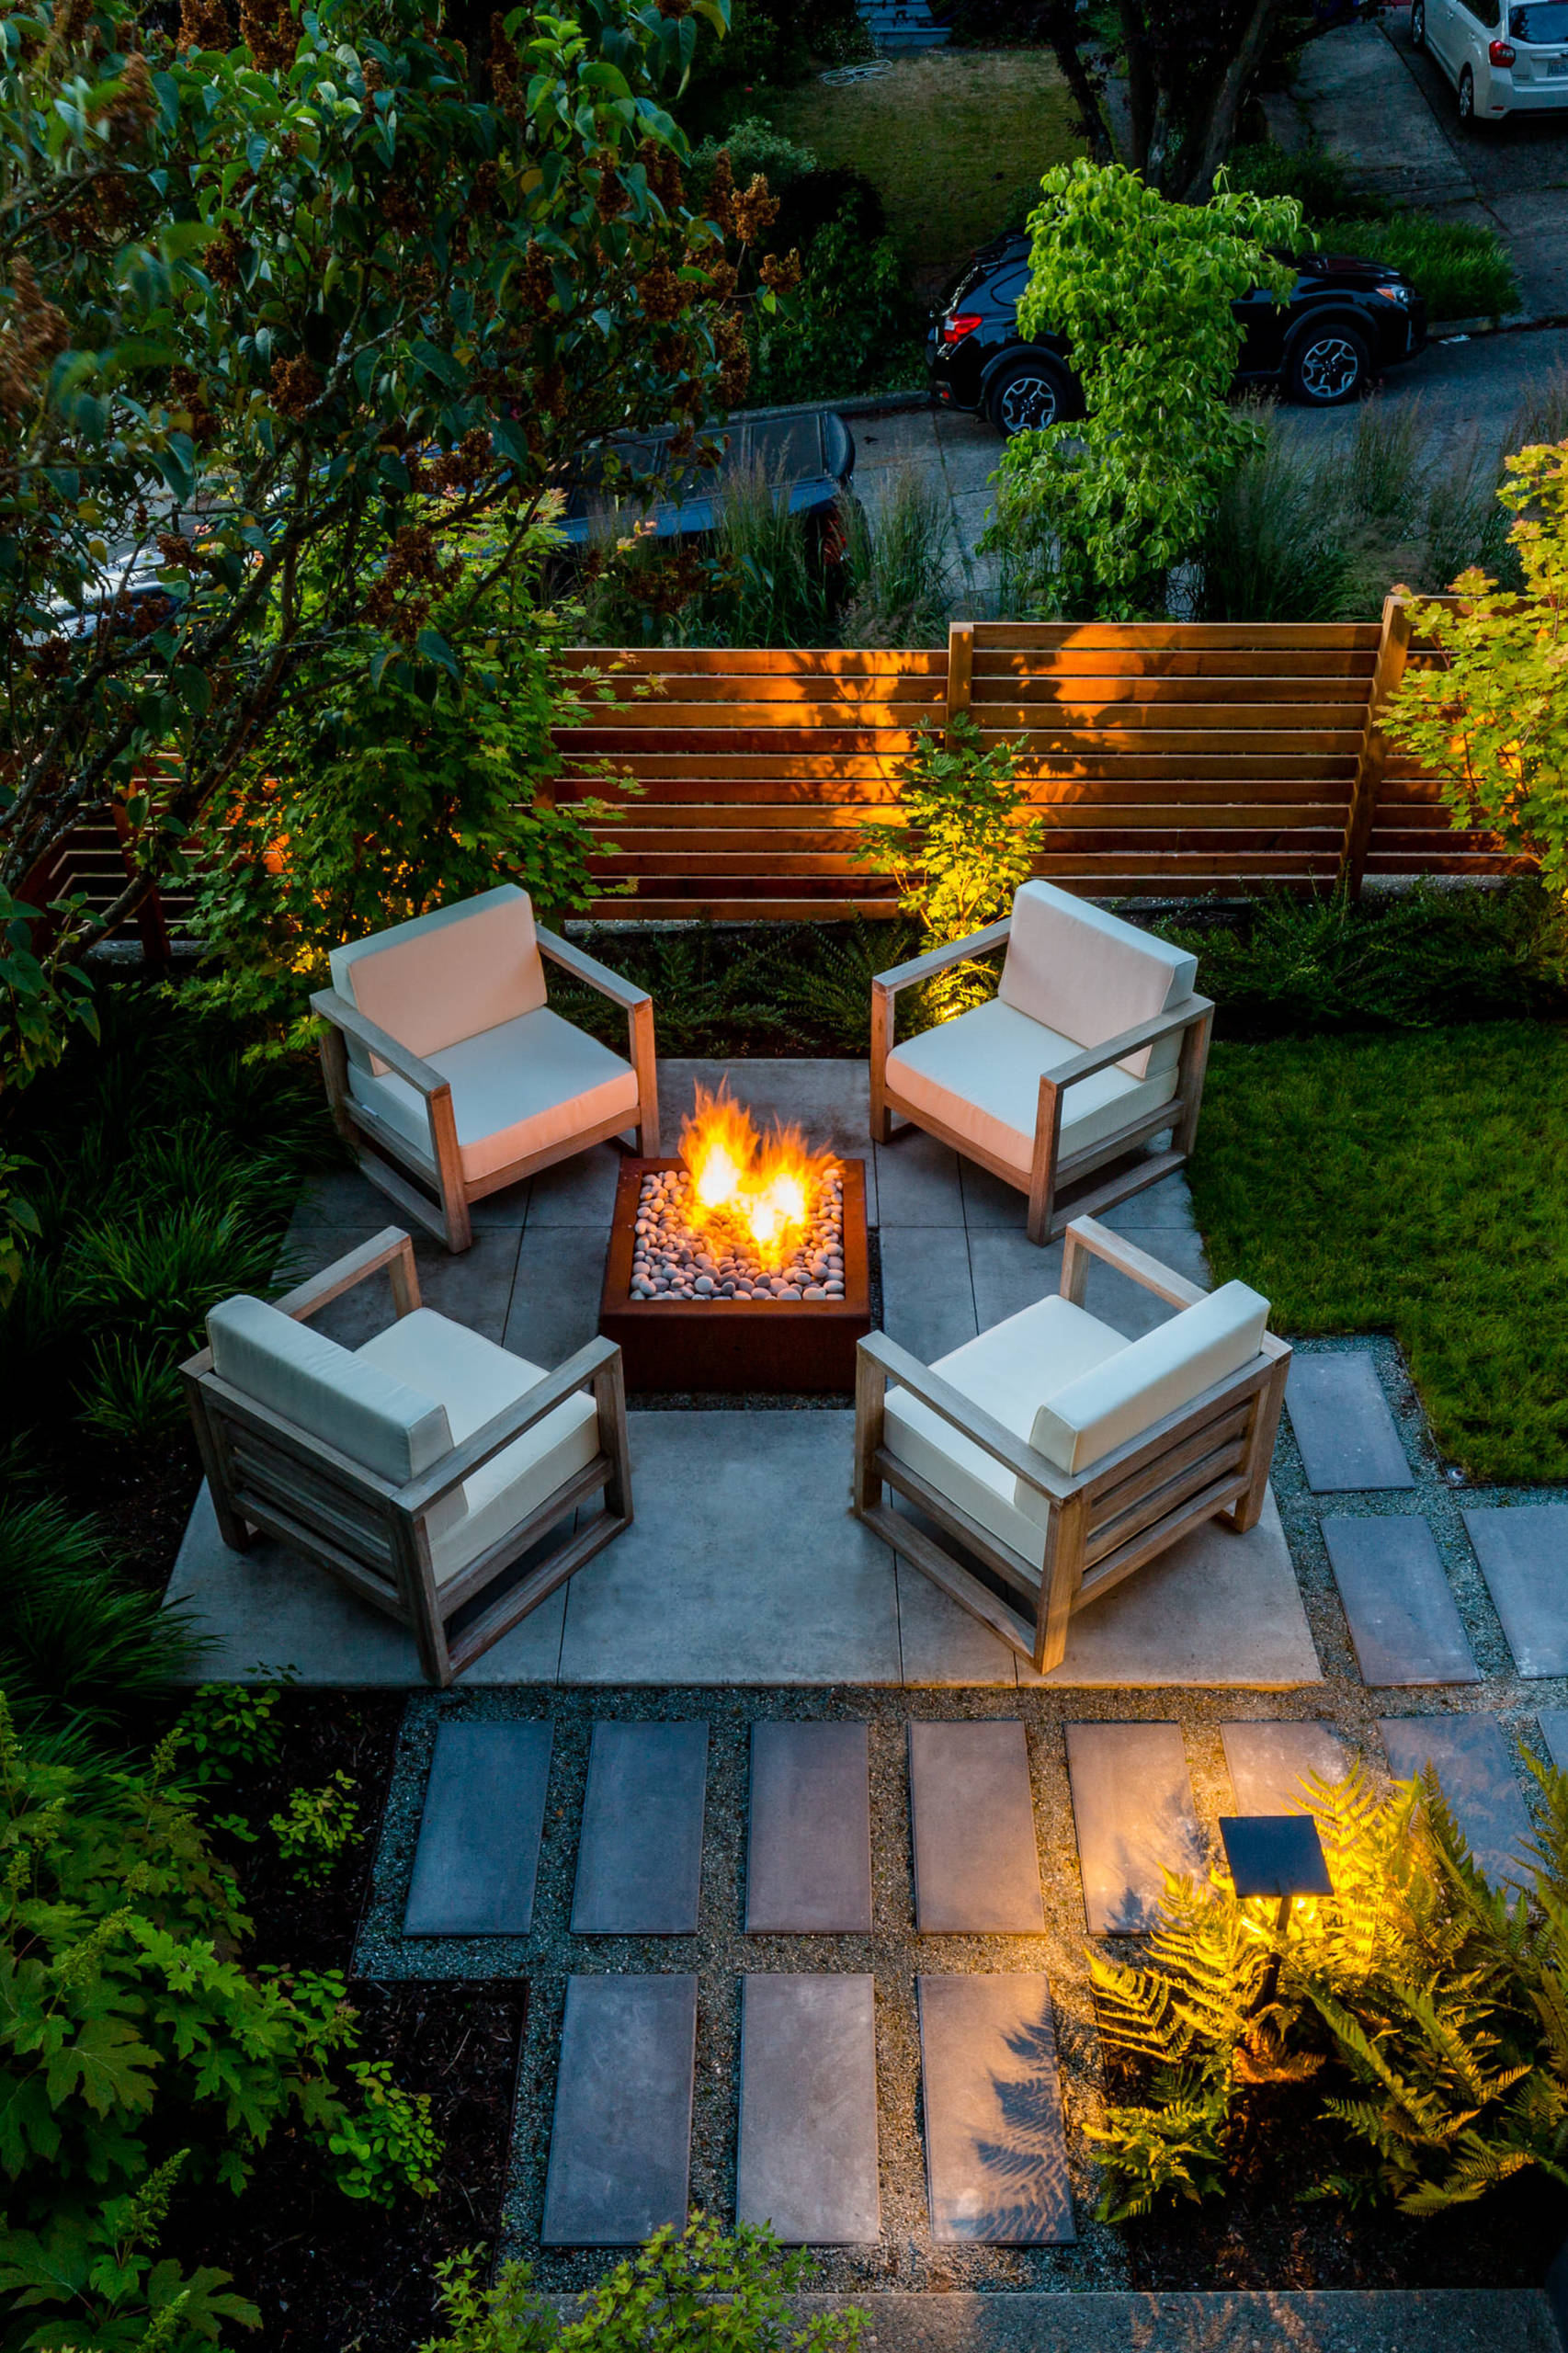 75 Beautiful Landscaping With A Fire Pit Pictures Ideas April 2021 Houzz